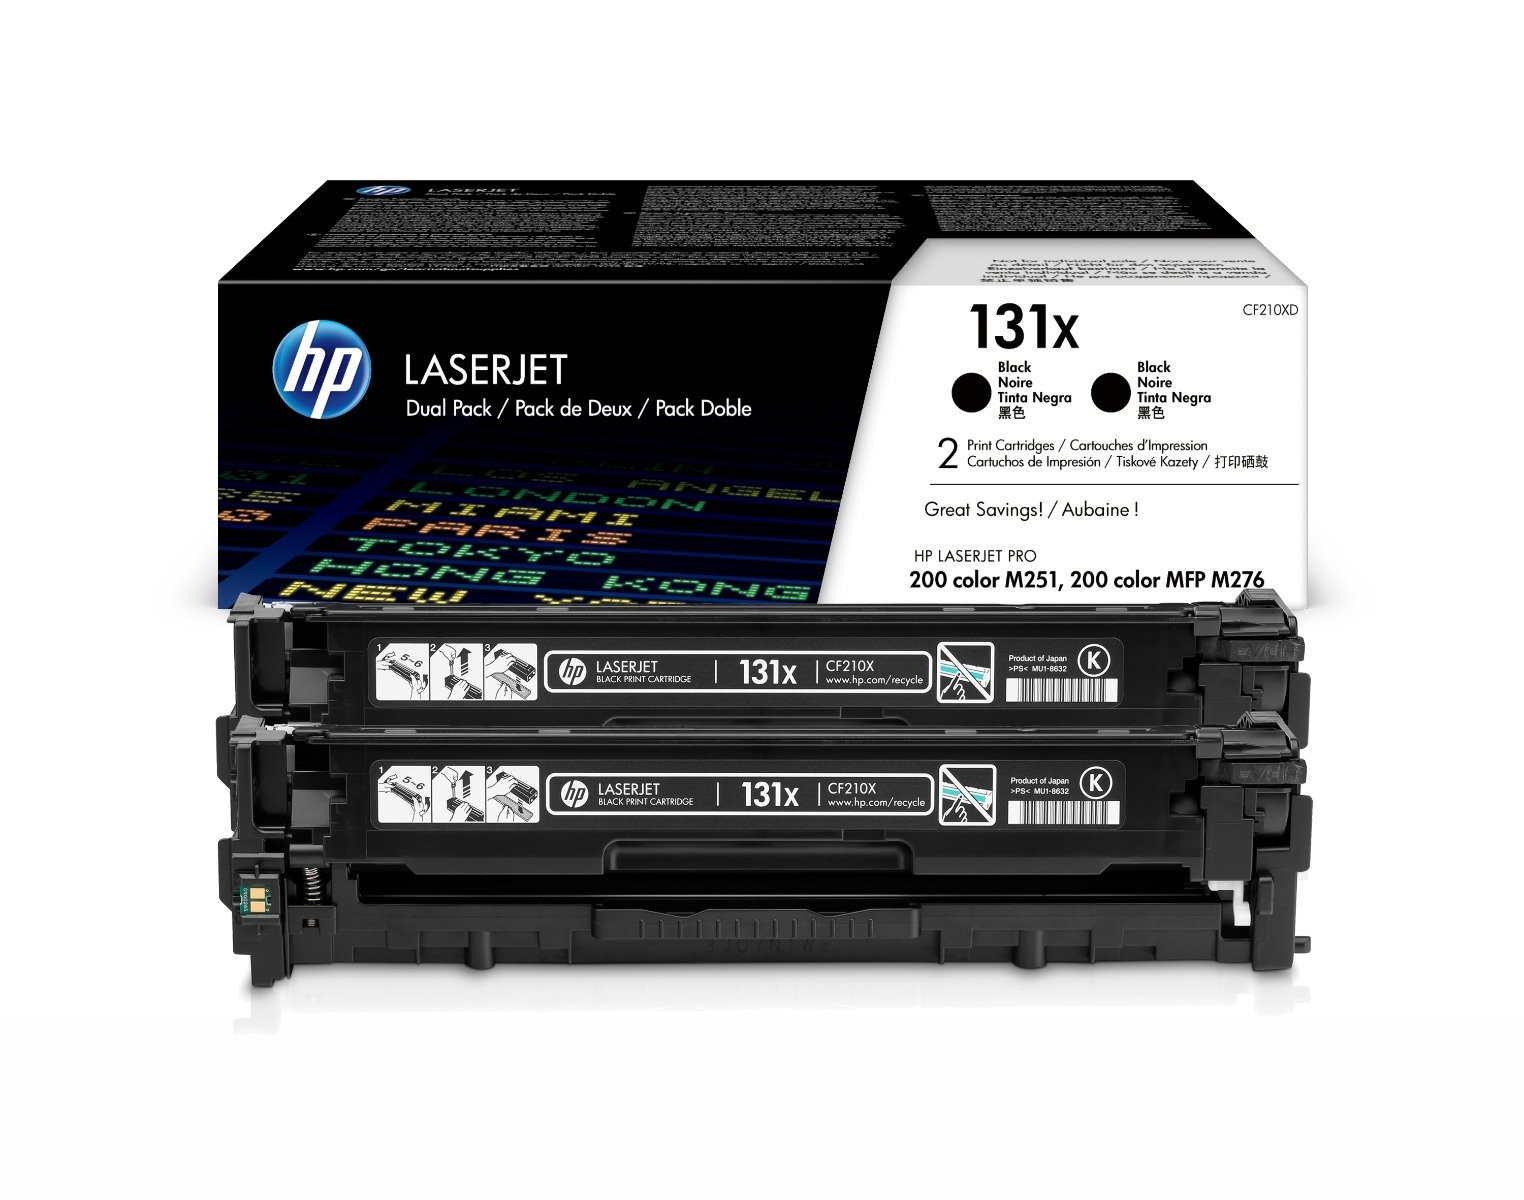 Genuine High Capacity Black HP 131X Toner Cartridge Twin Pack - (CF210XD)